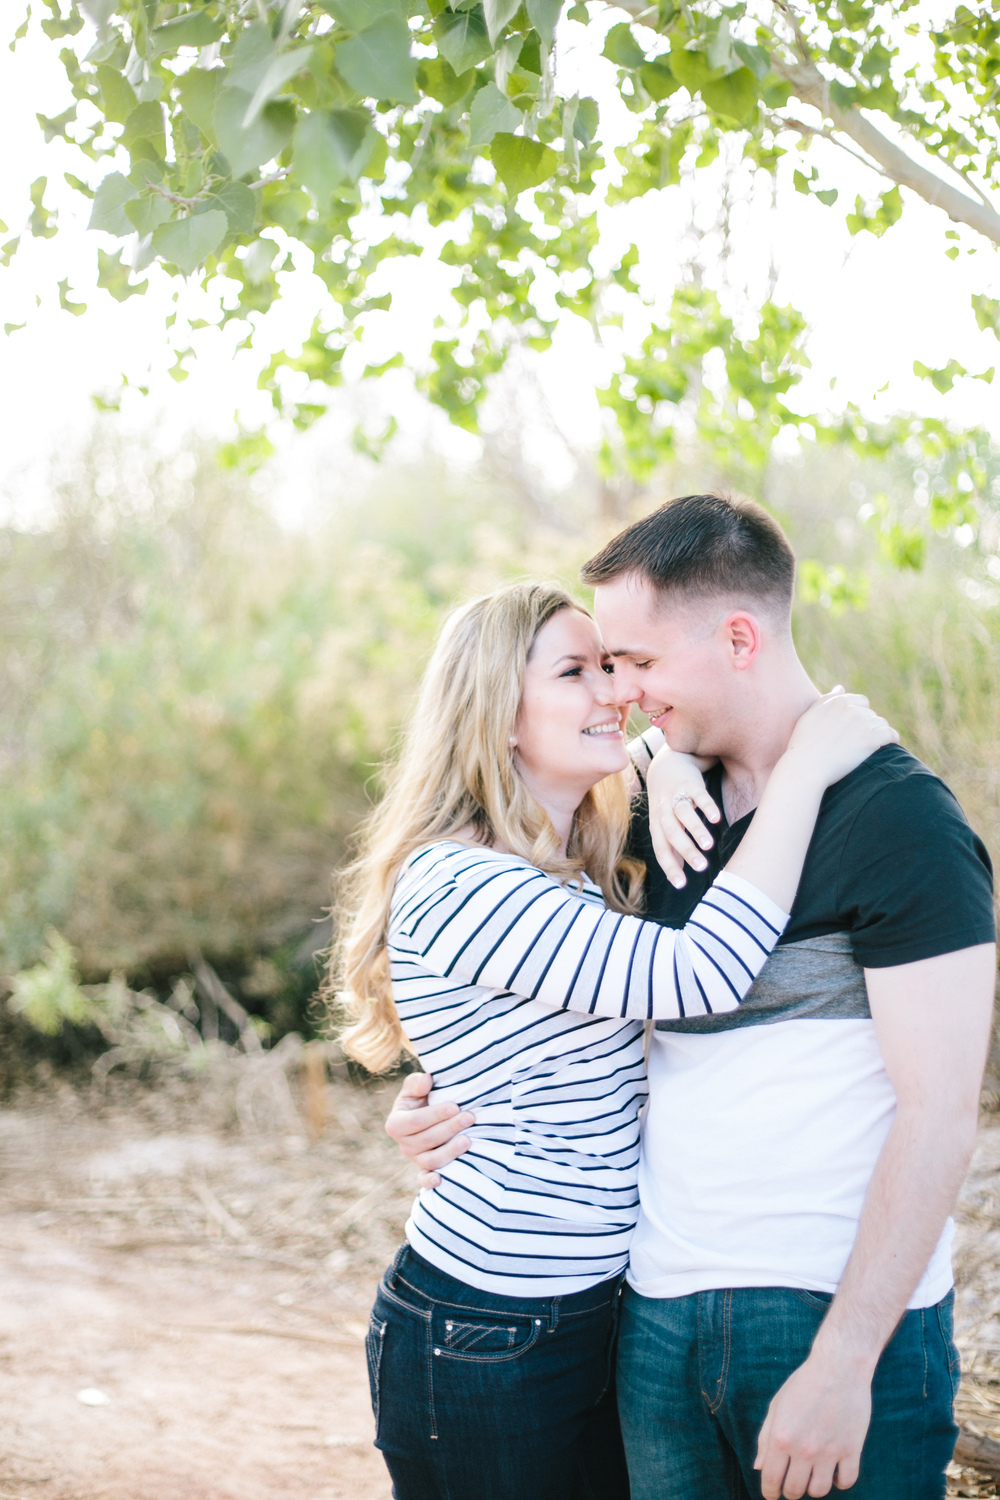 Karolina & Ross Griswold - Engagement Photos by Meg Ruth